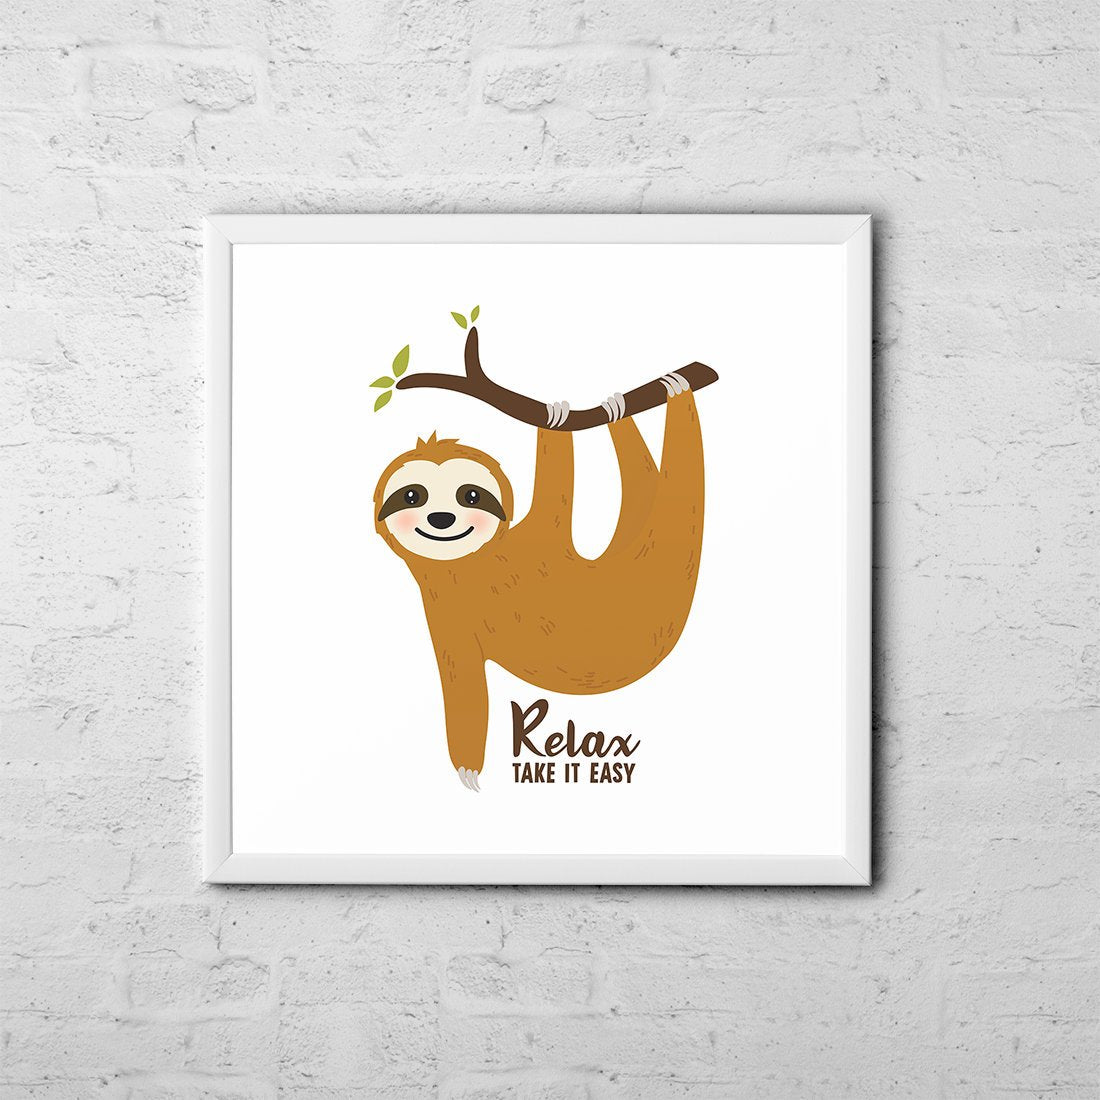 Relax Take It Easy - Baby Room Nursery Art Poster Print